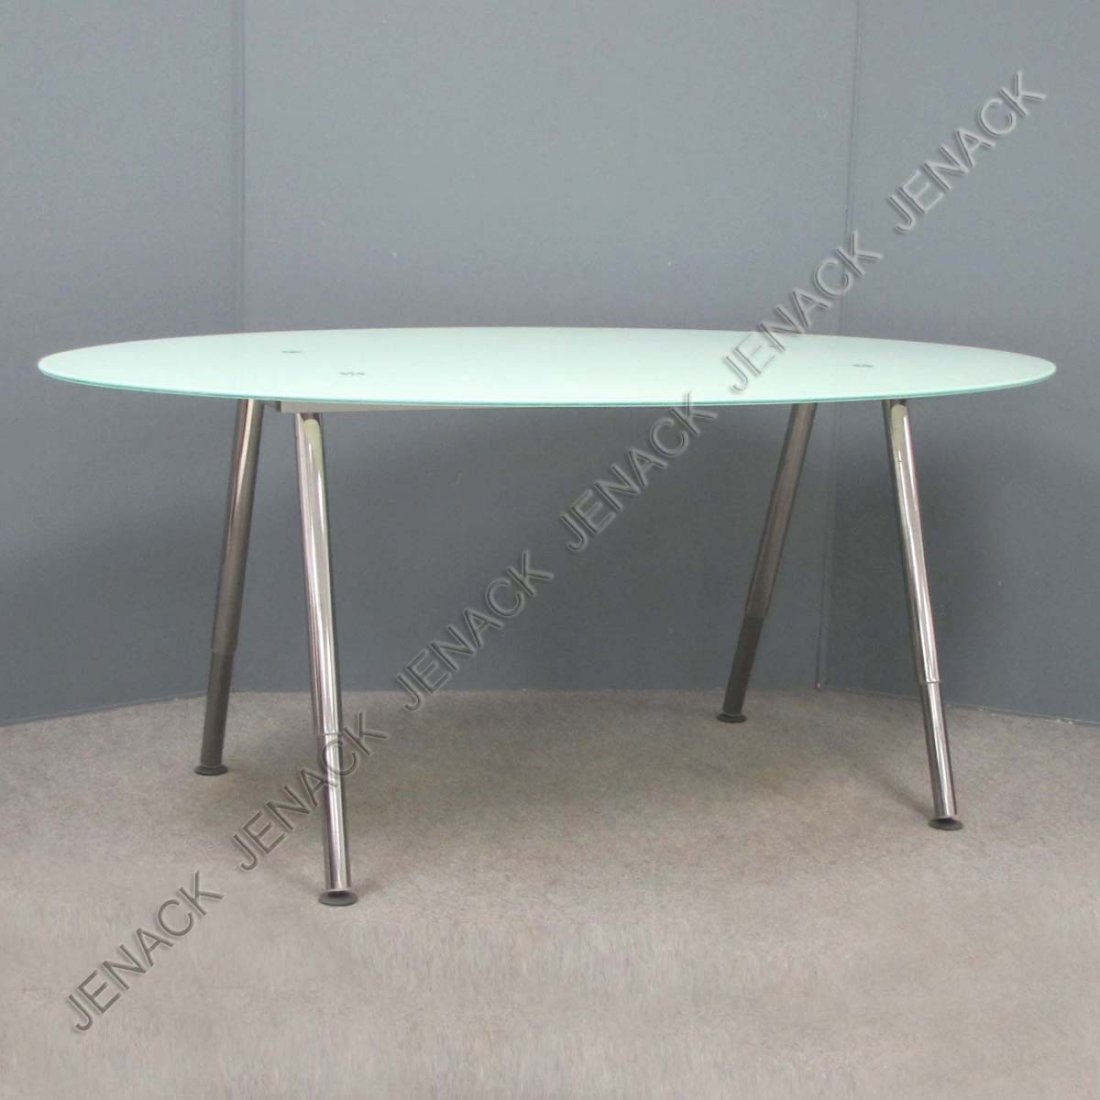 Ikea glass table desk - 99 Ikea Modern Design Oval Glass Dining Table